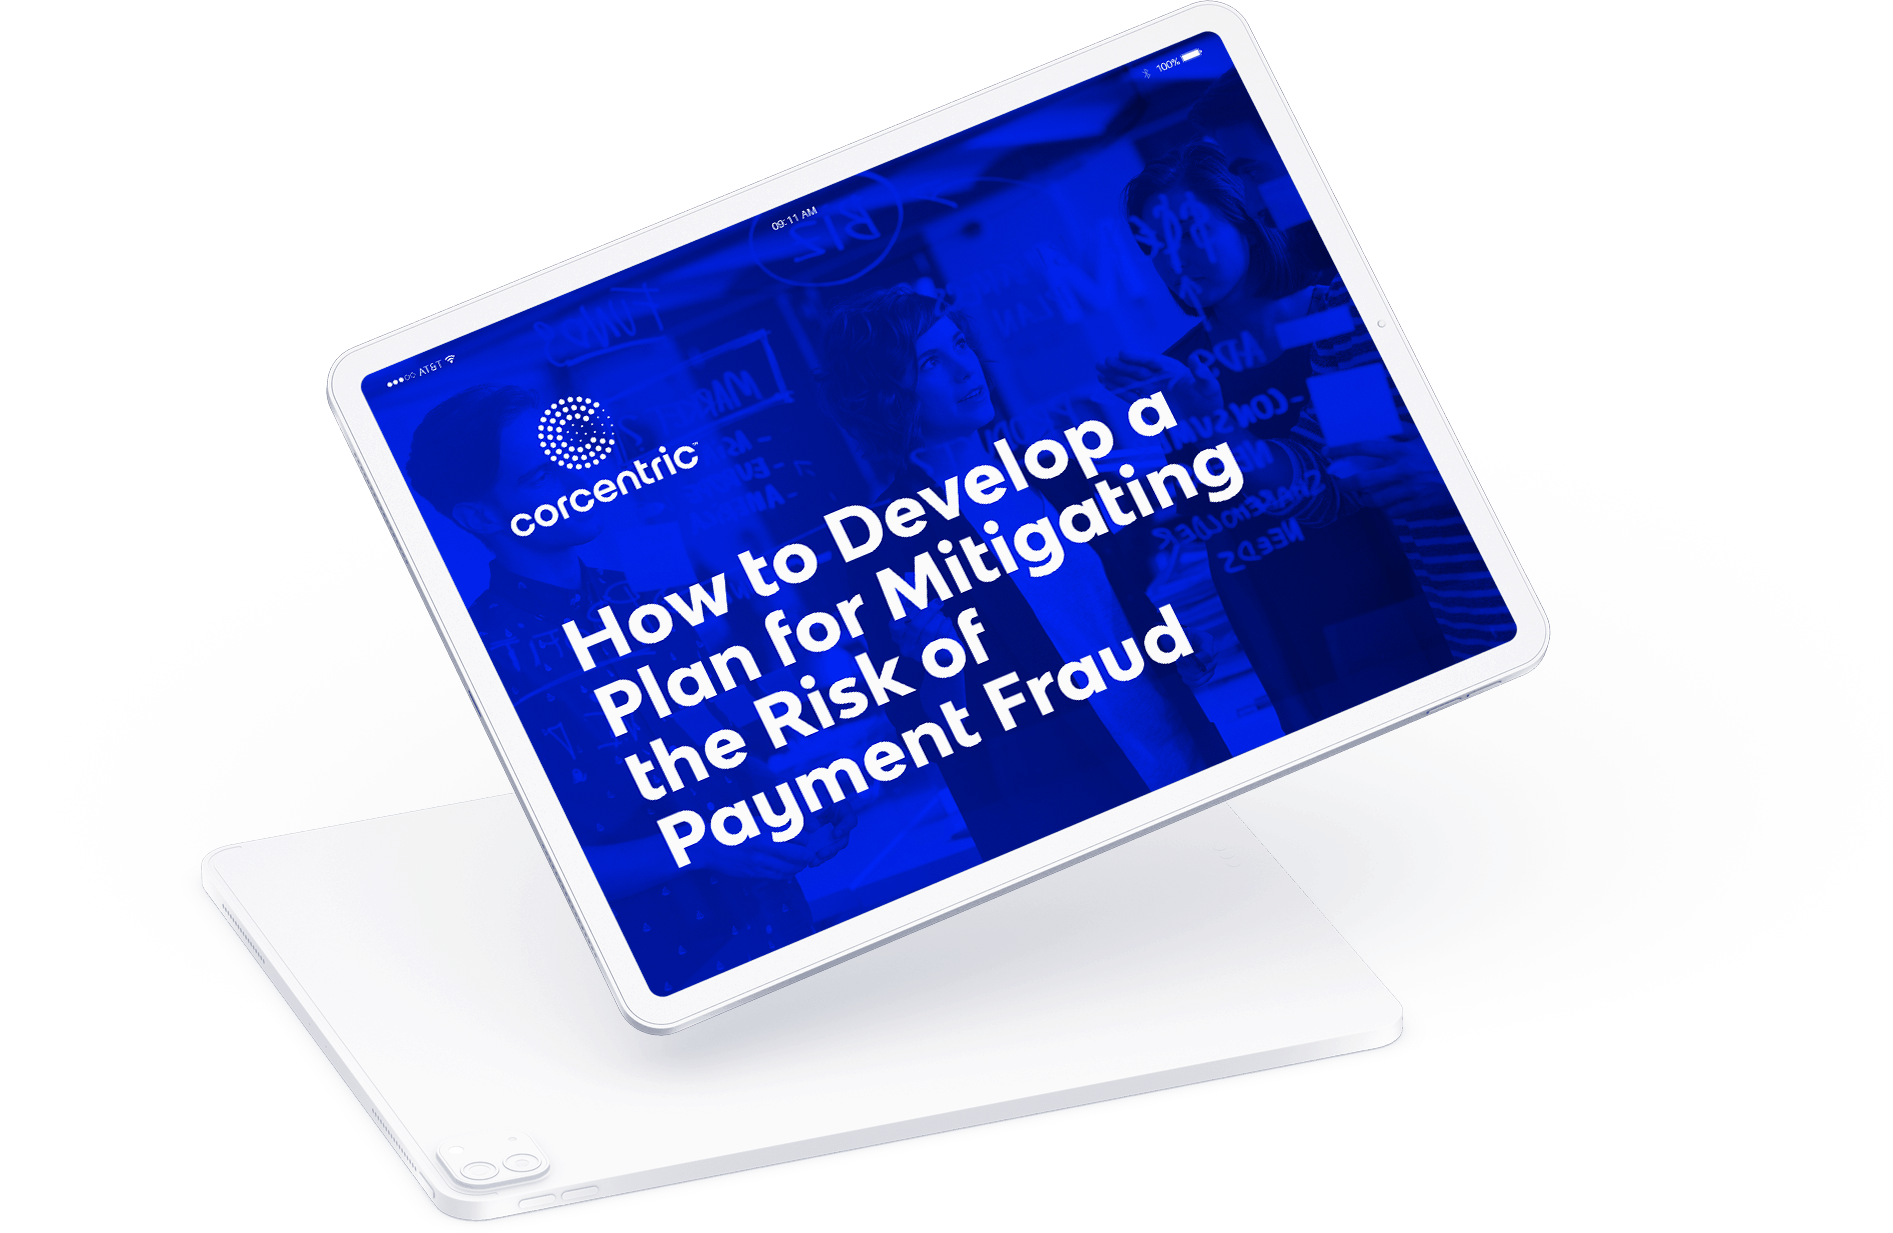 Webinar: How to Develop a Plan for Mitigating the Risk of Payment Fraud